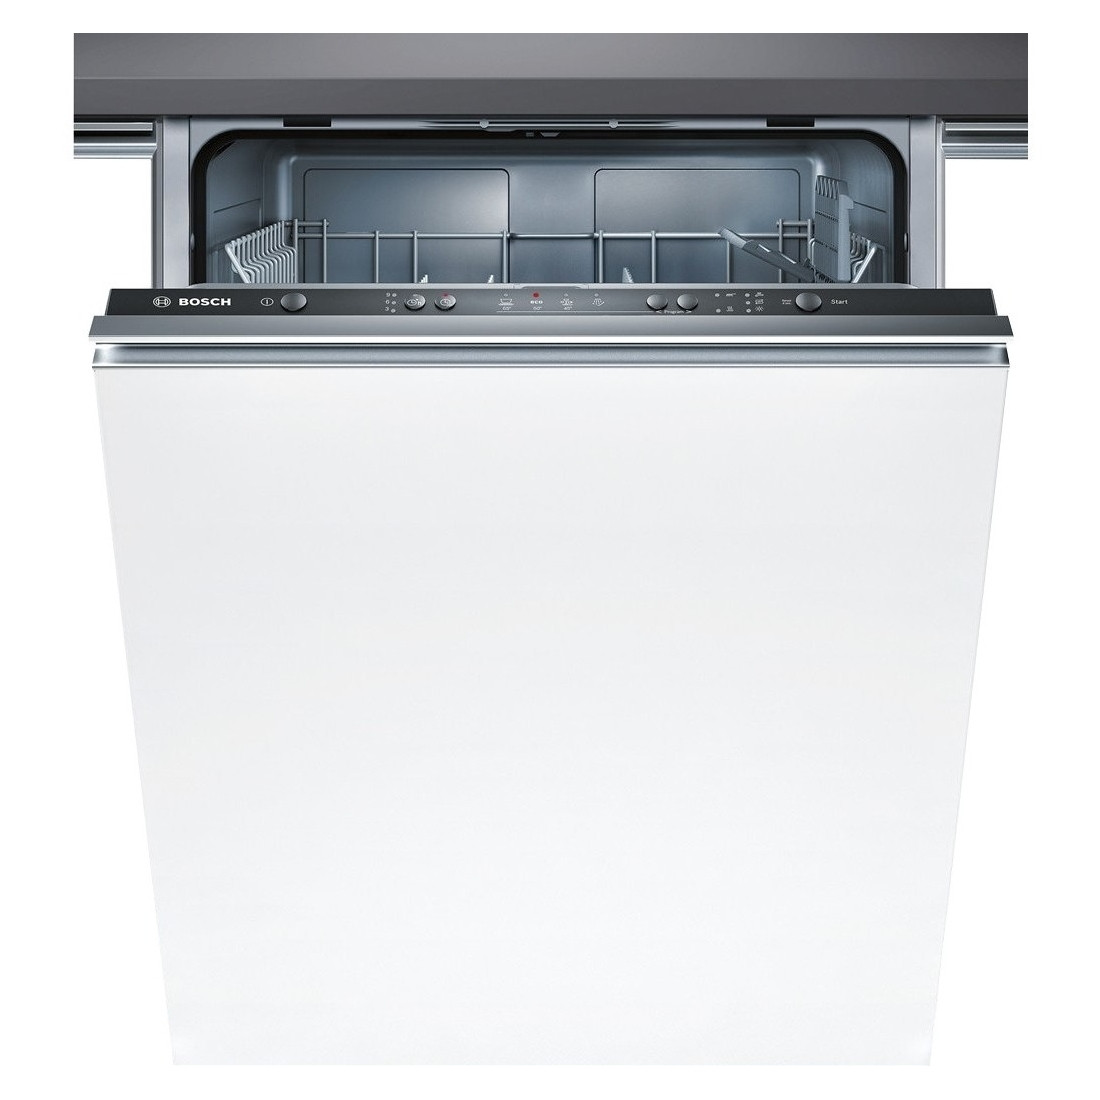 Bosch Built In 60cm White 12 Place Setting Fully Integrated Dishwasher SMV40C40GB